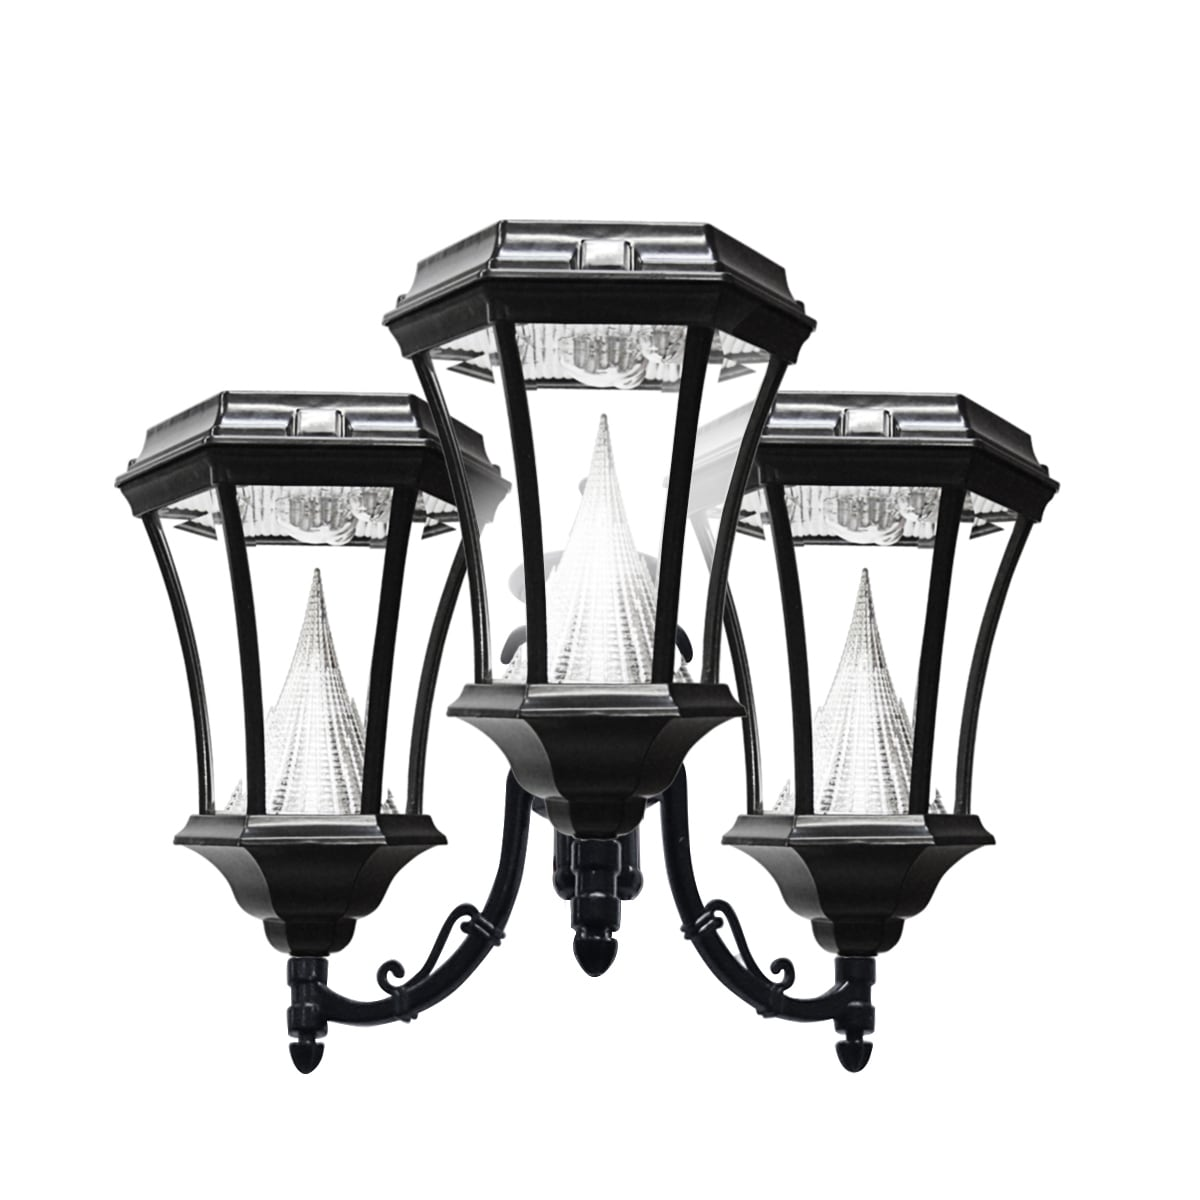 Overstock.com Gama Sonic GS-94F3 Post Mount Victorian Light Fixture with 3 Solar 9-LED Lights at Sears.com